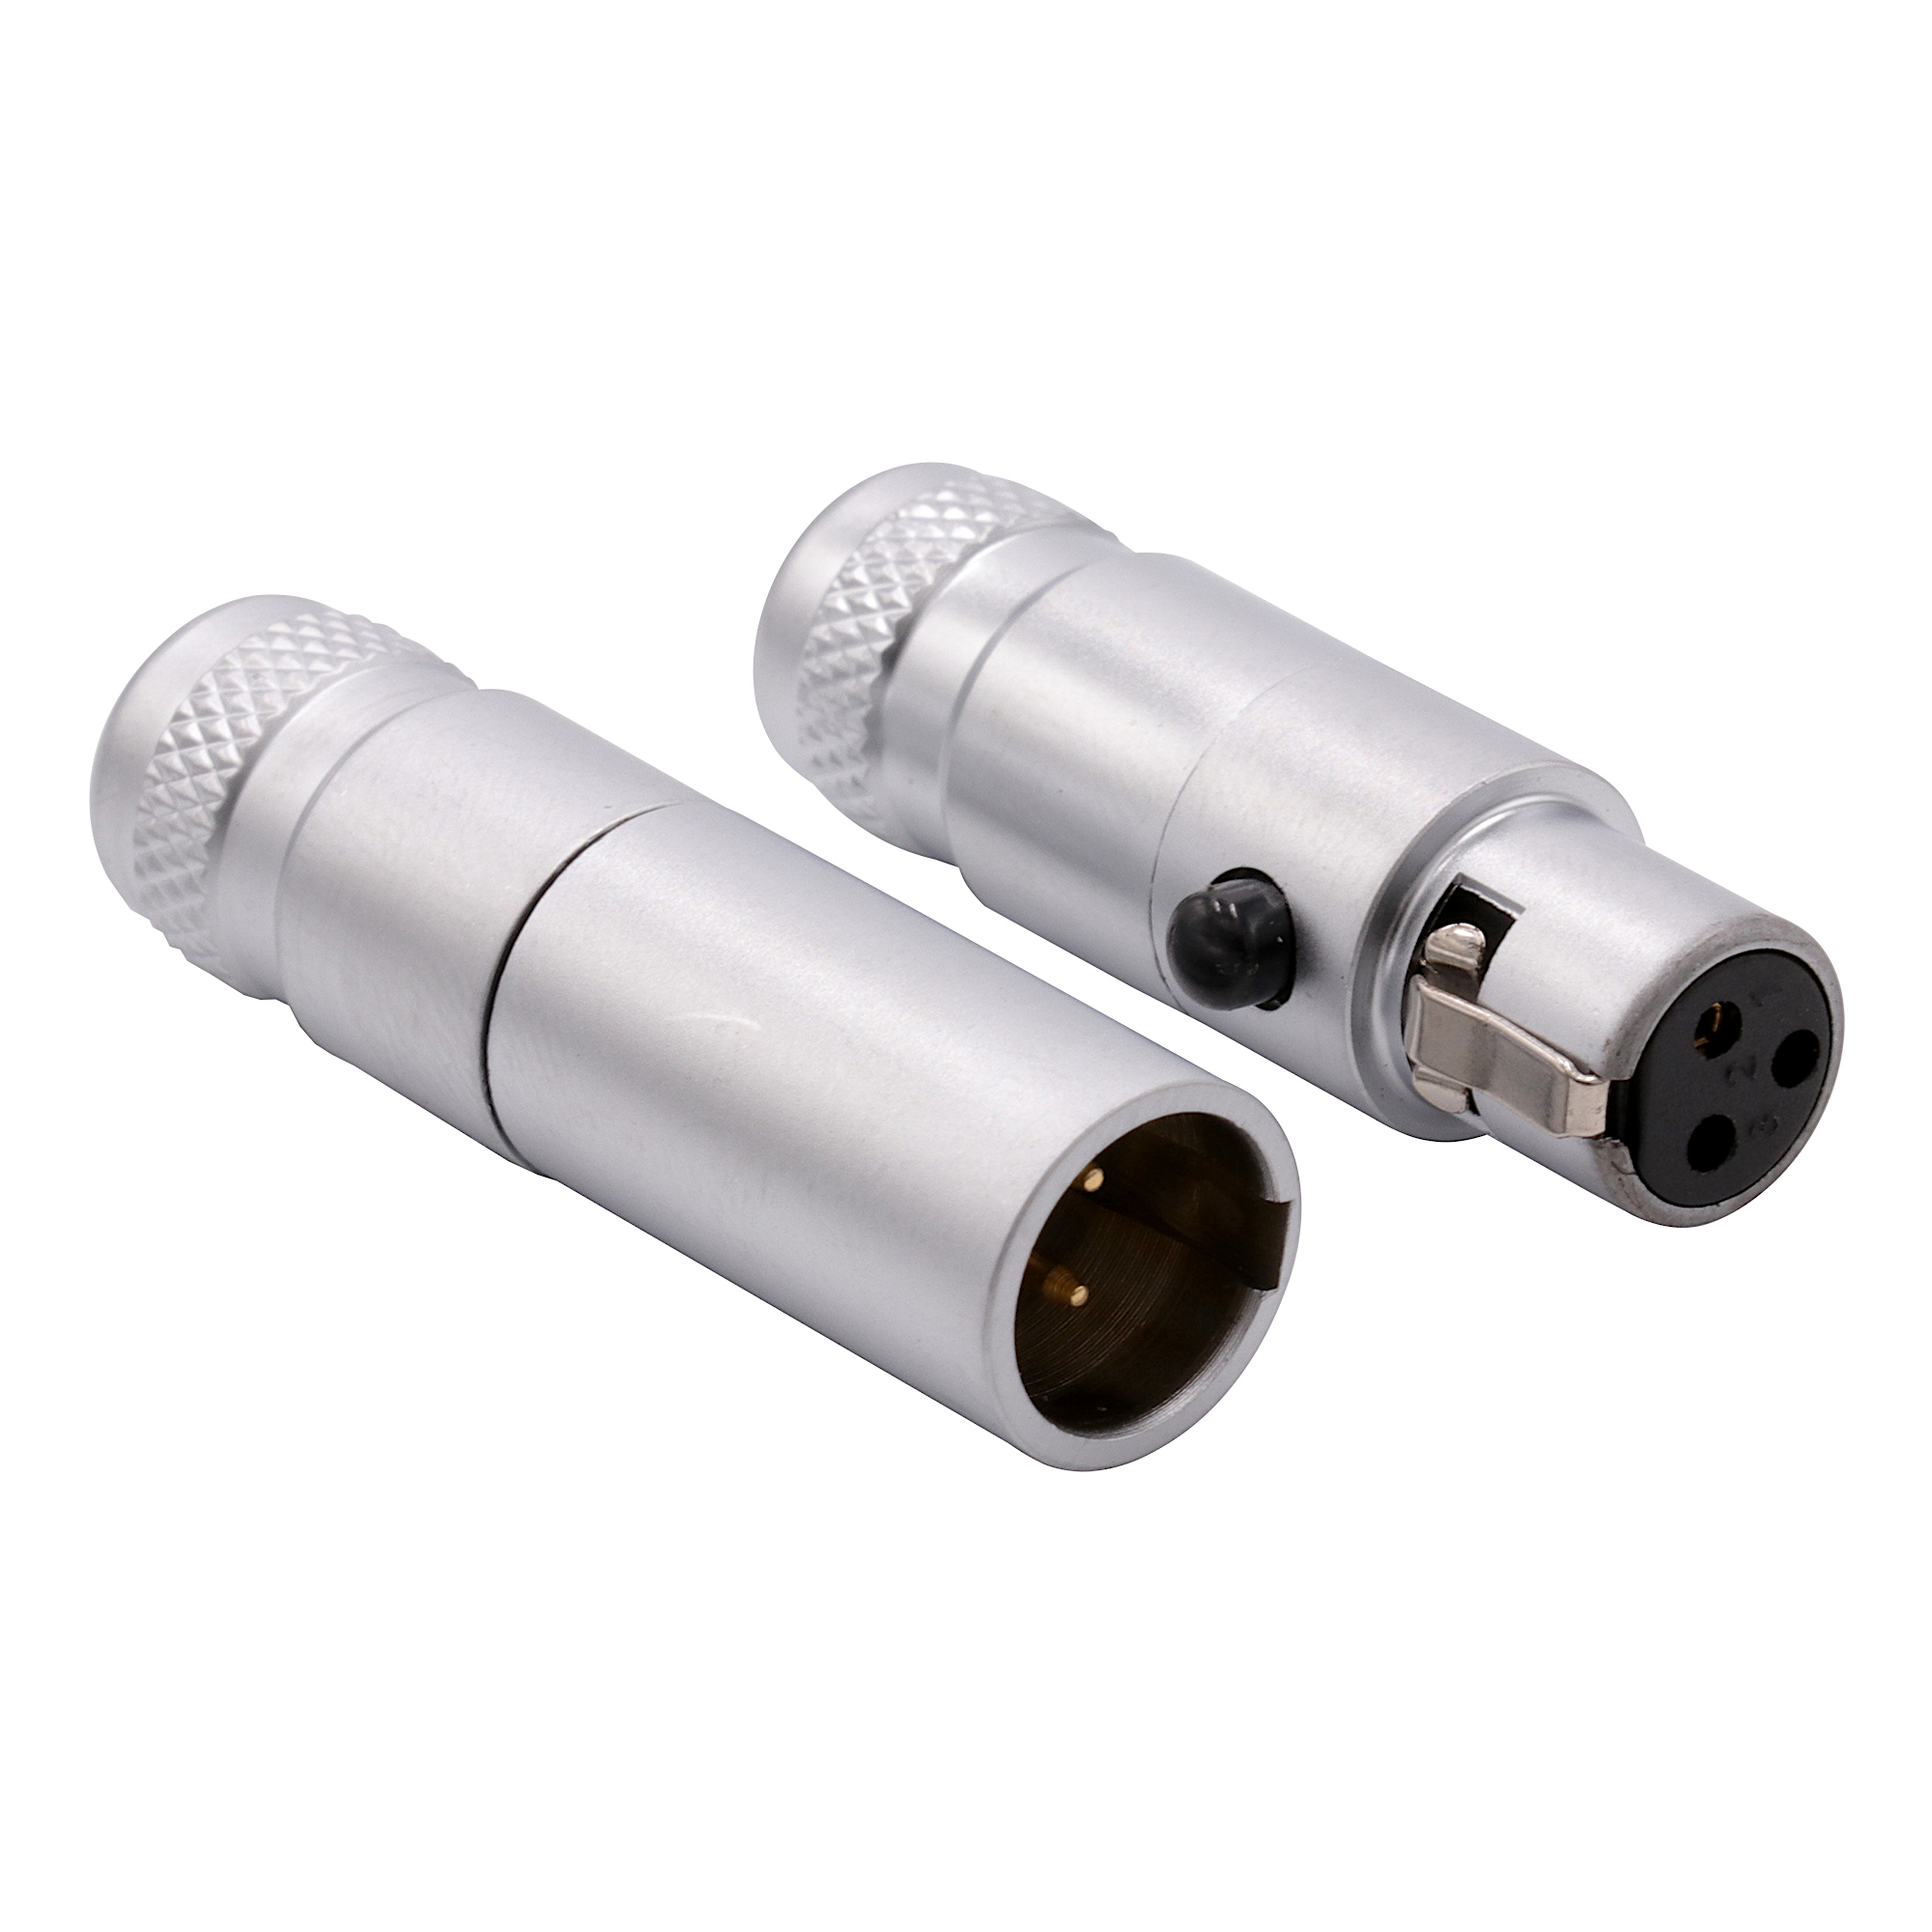 Lot 2 XLR 4pin Nickel Housing Female Plug Cable Connector w//Silver Contact Poles